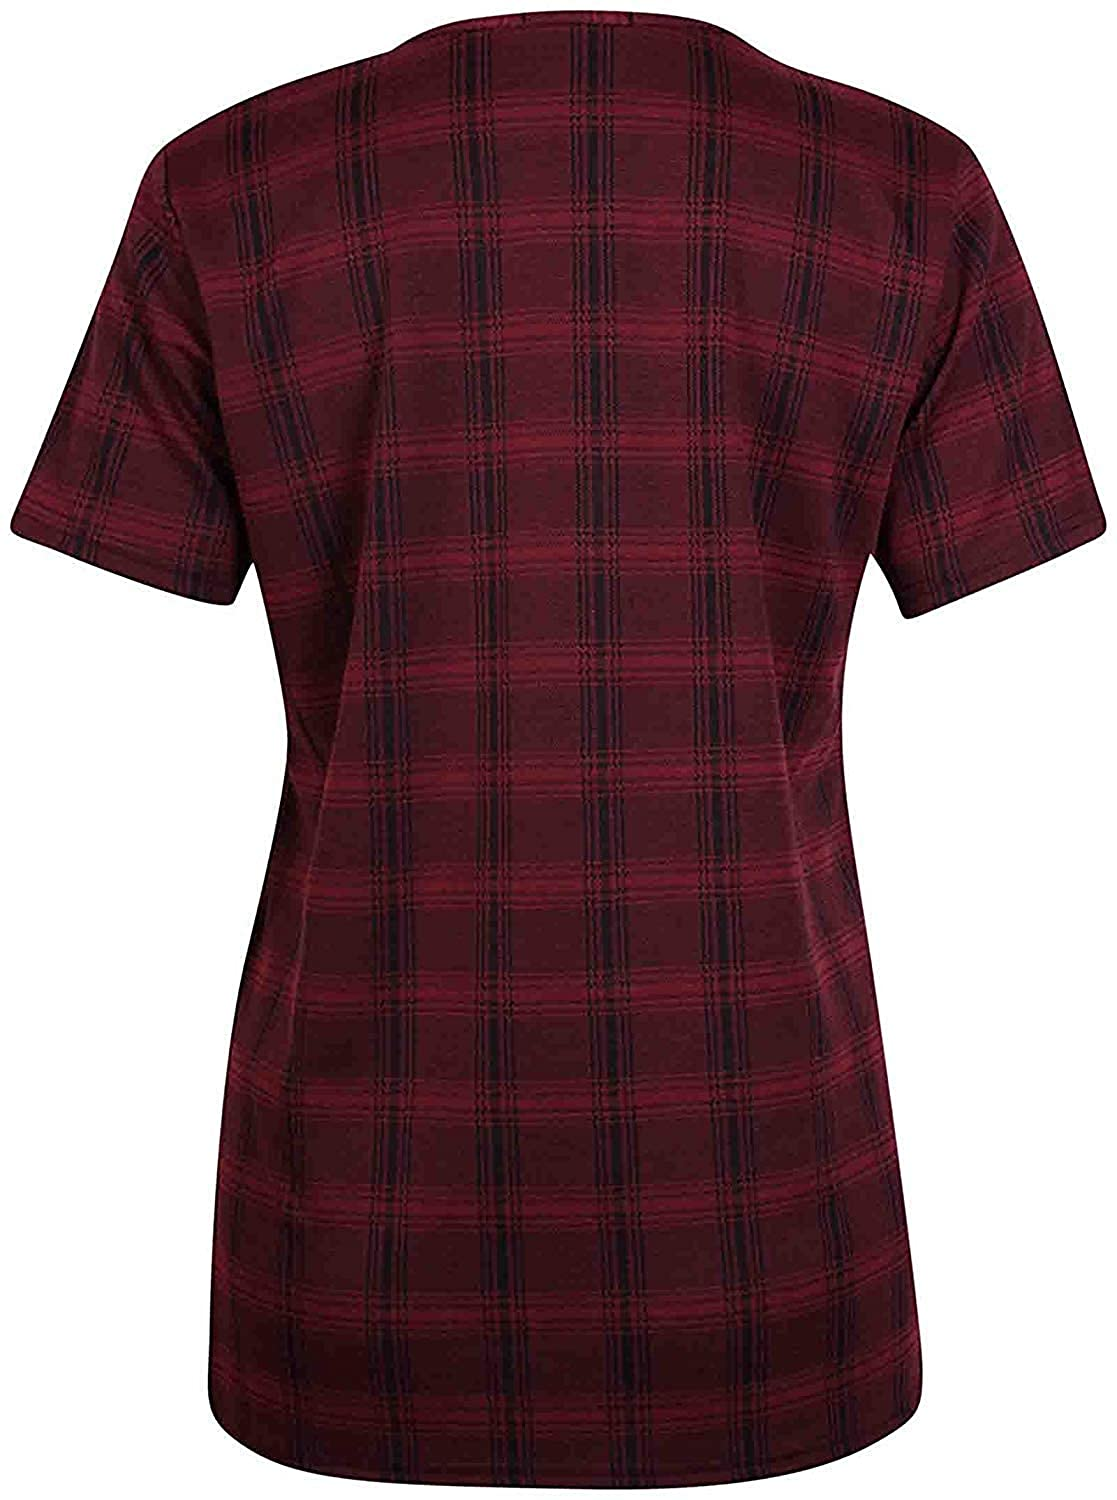 Womens Tartan Check Printed Ladies Stretch Short Sleeve Round Scoop Neck T-Shirt Tank Top Plus Size